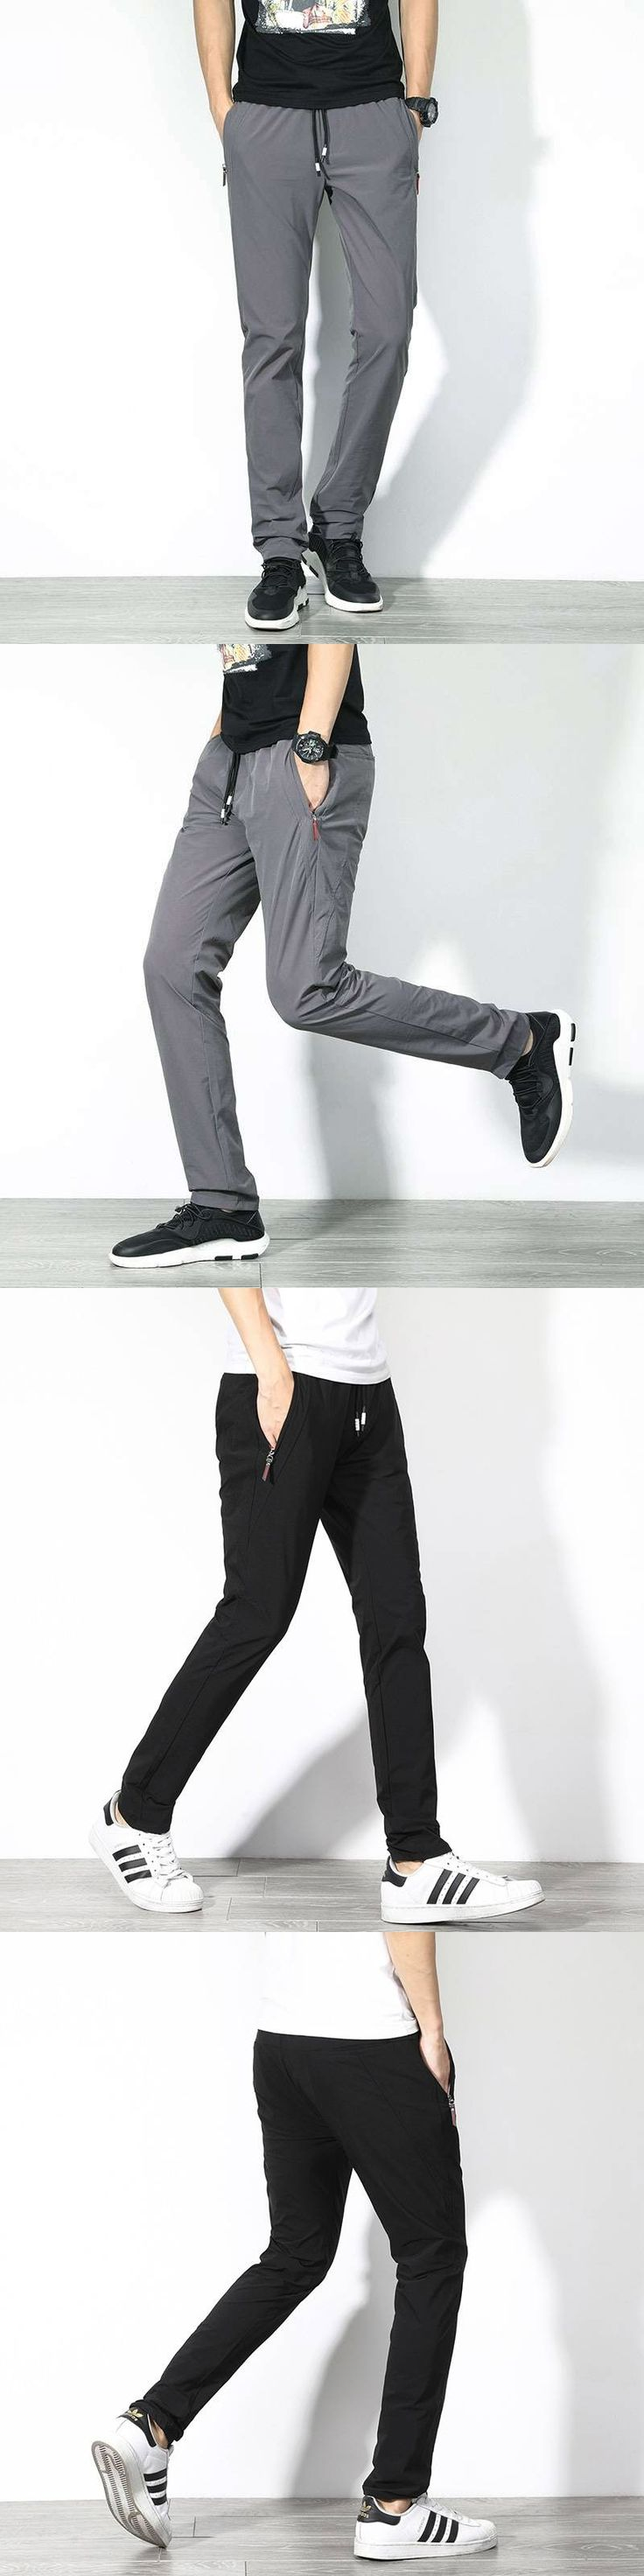 #1515 Black Straight trousers men Lightweight Casual pants Plus size 38-40 Sweat pants Spring summer 2018 Elastic waist trousers